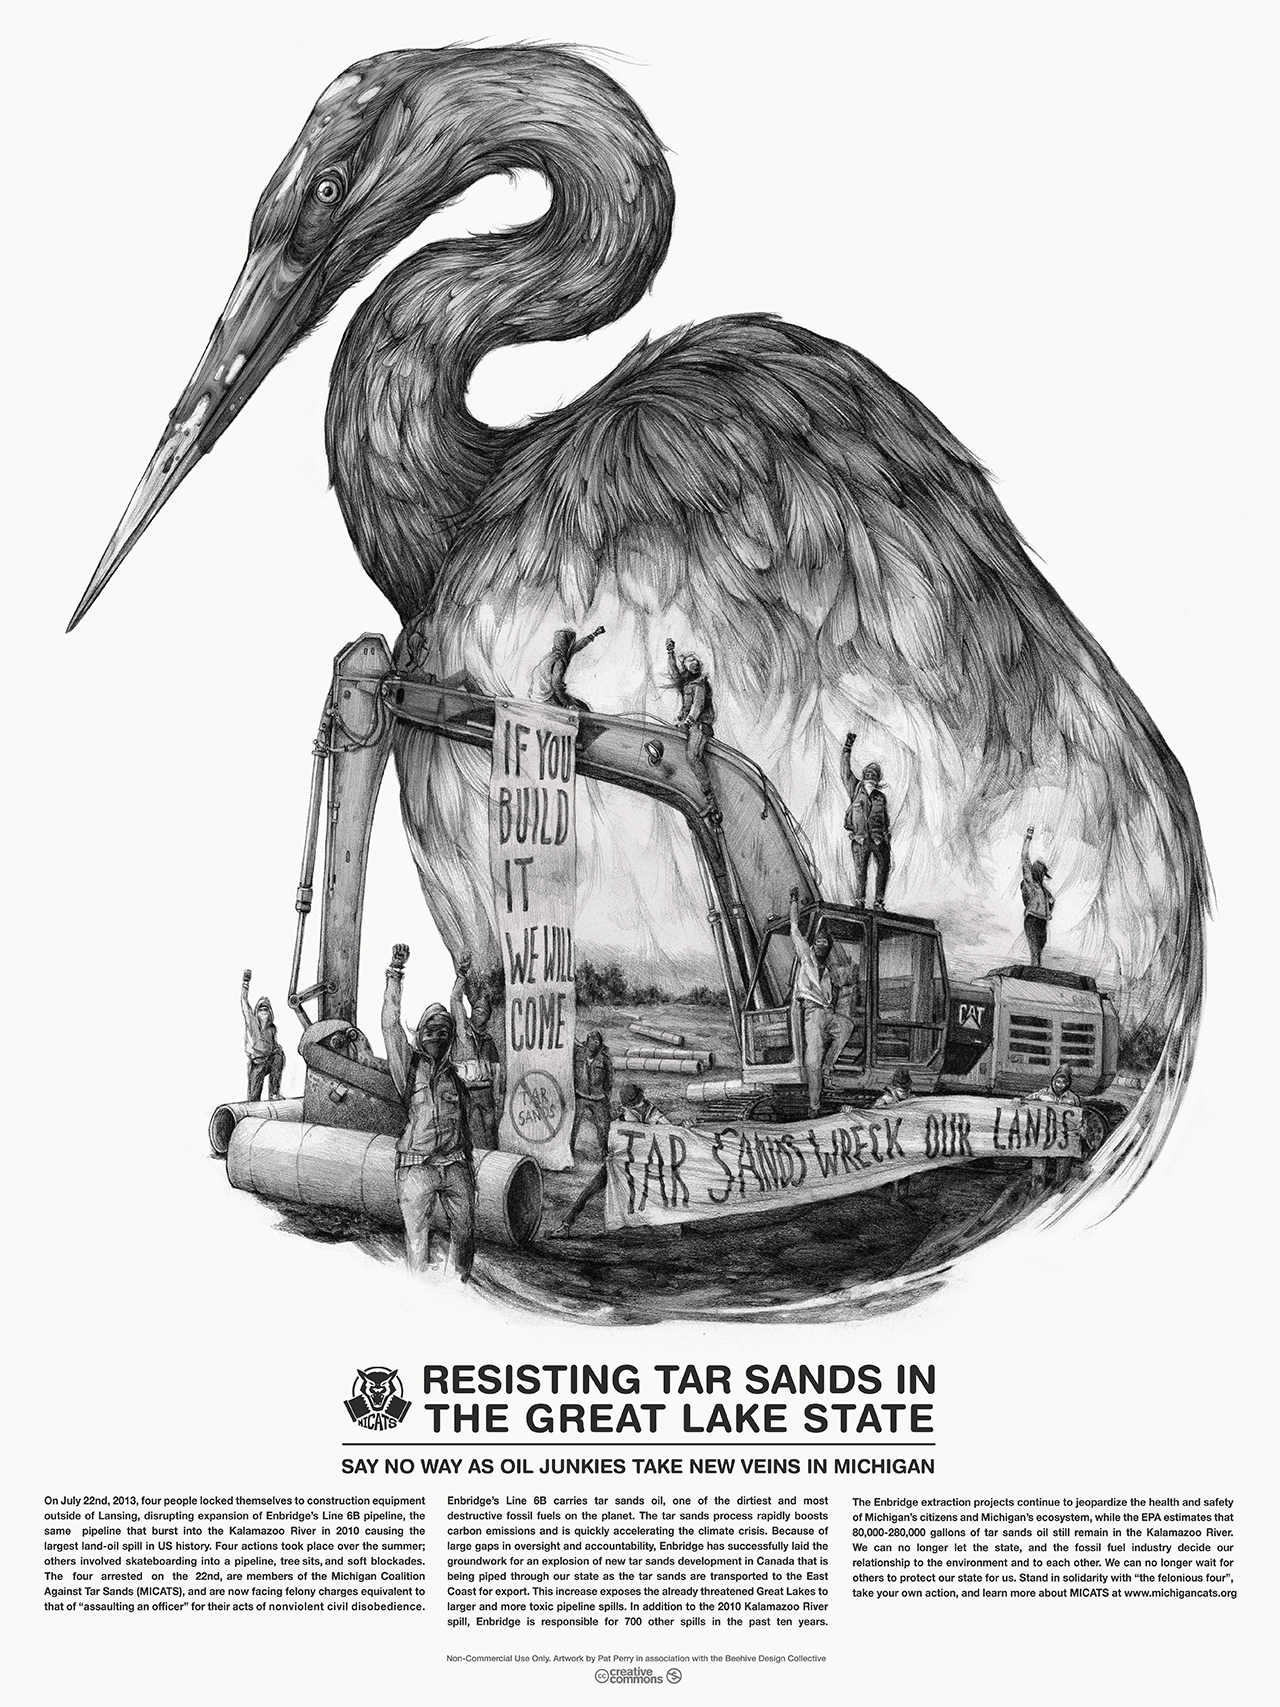 """Great Lakes Tar Sands Resistance,"" Pat Perry, 2013 (Reproduced with permission from publisher)"